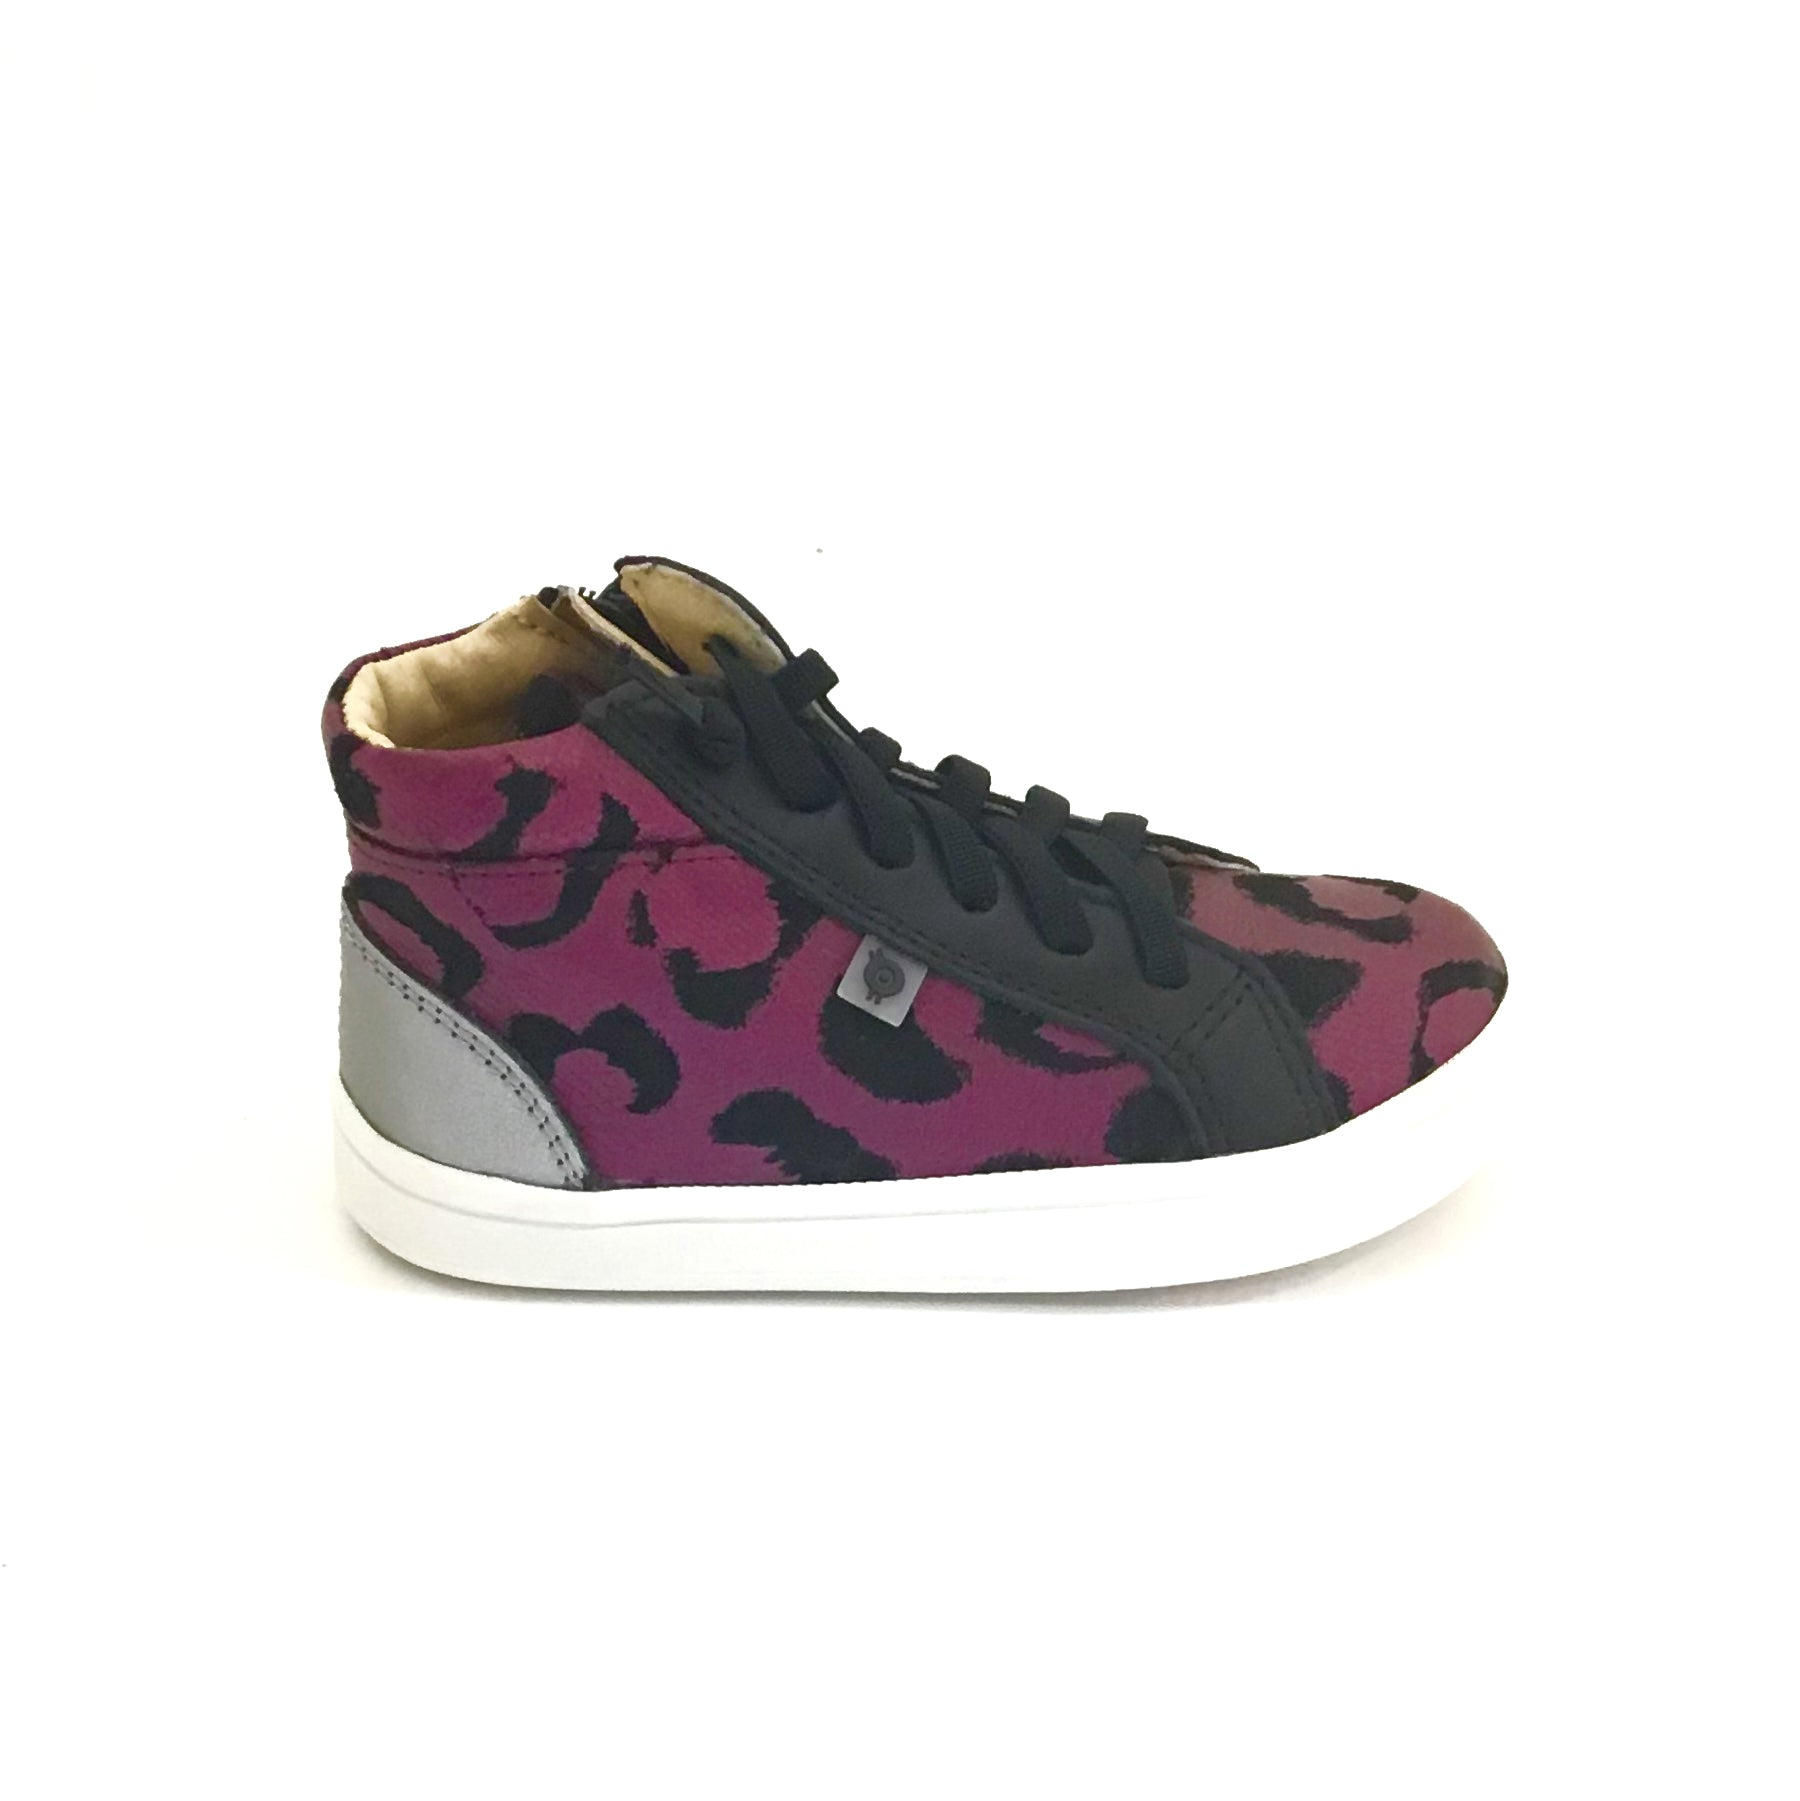 Old Soles Pink Cat Print High Top Sneaker